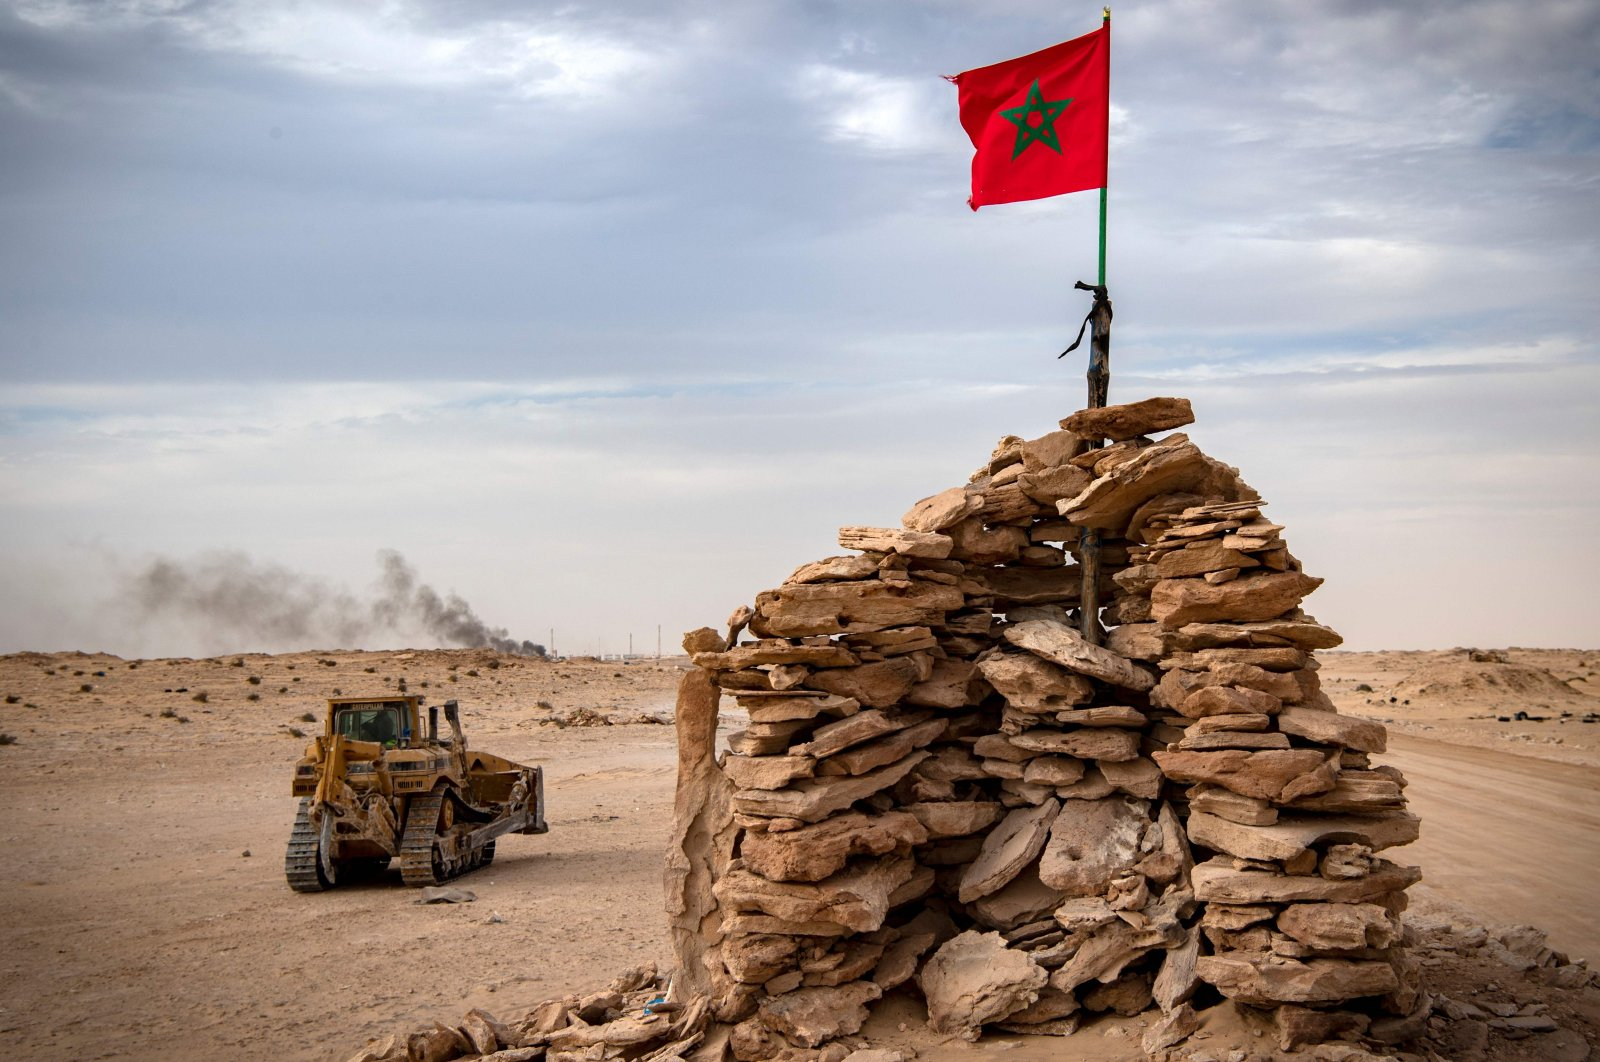 A bulldozer passes by a hilltop manned by Moroccan soldiers on a road between Morocco and Mauritania in Guerguerat located in the Western Sahara, Nov. 23, 2020. (AFP Photo)